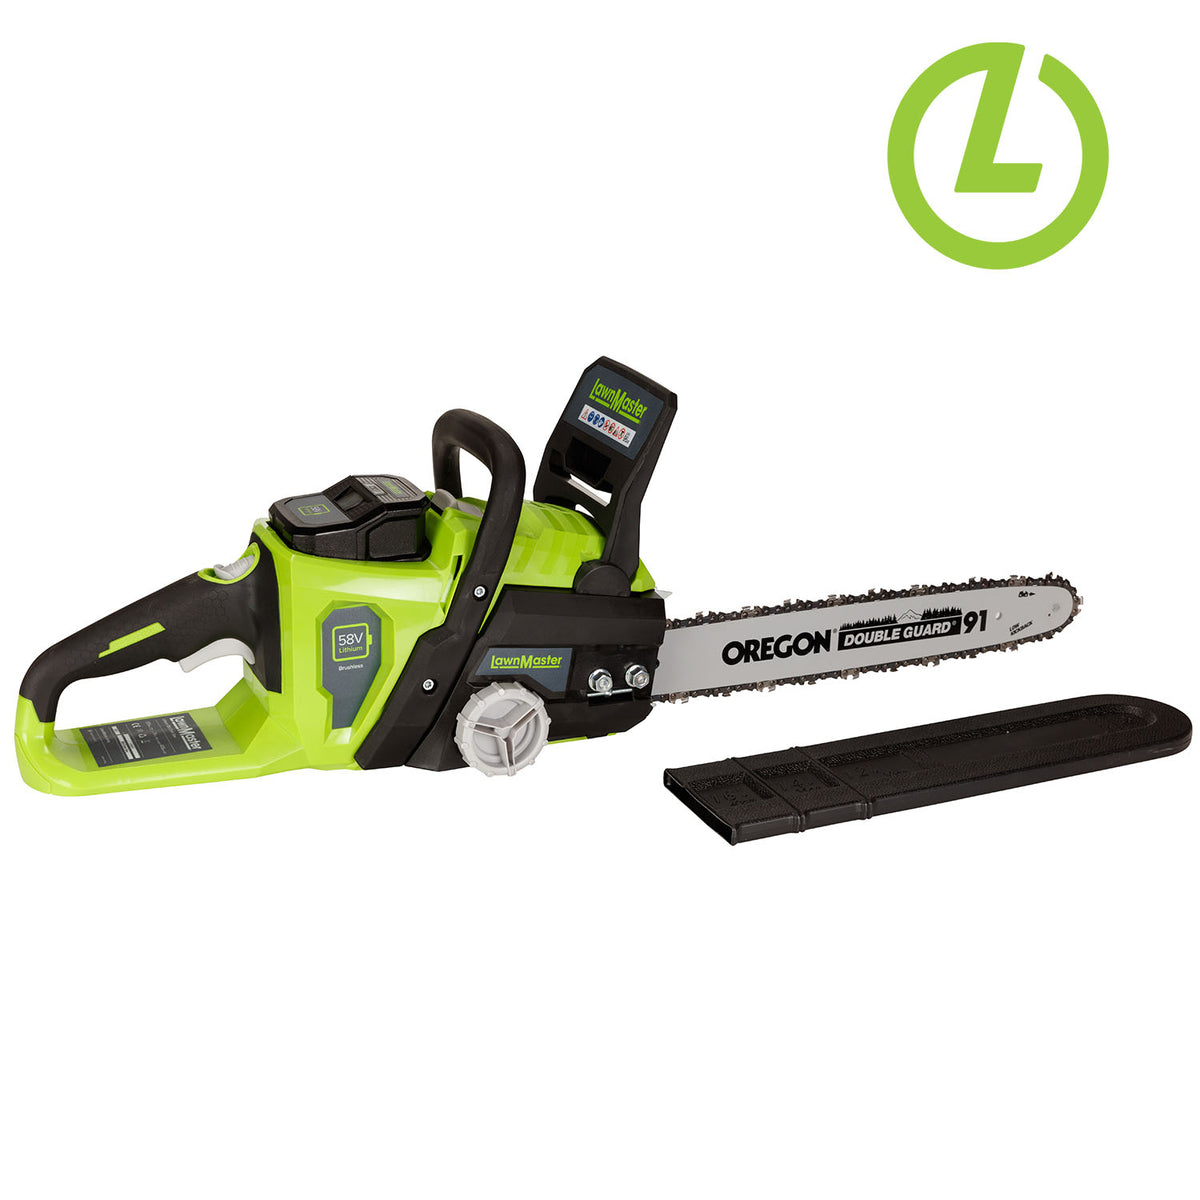 LawnMaster Chain Saw